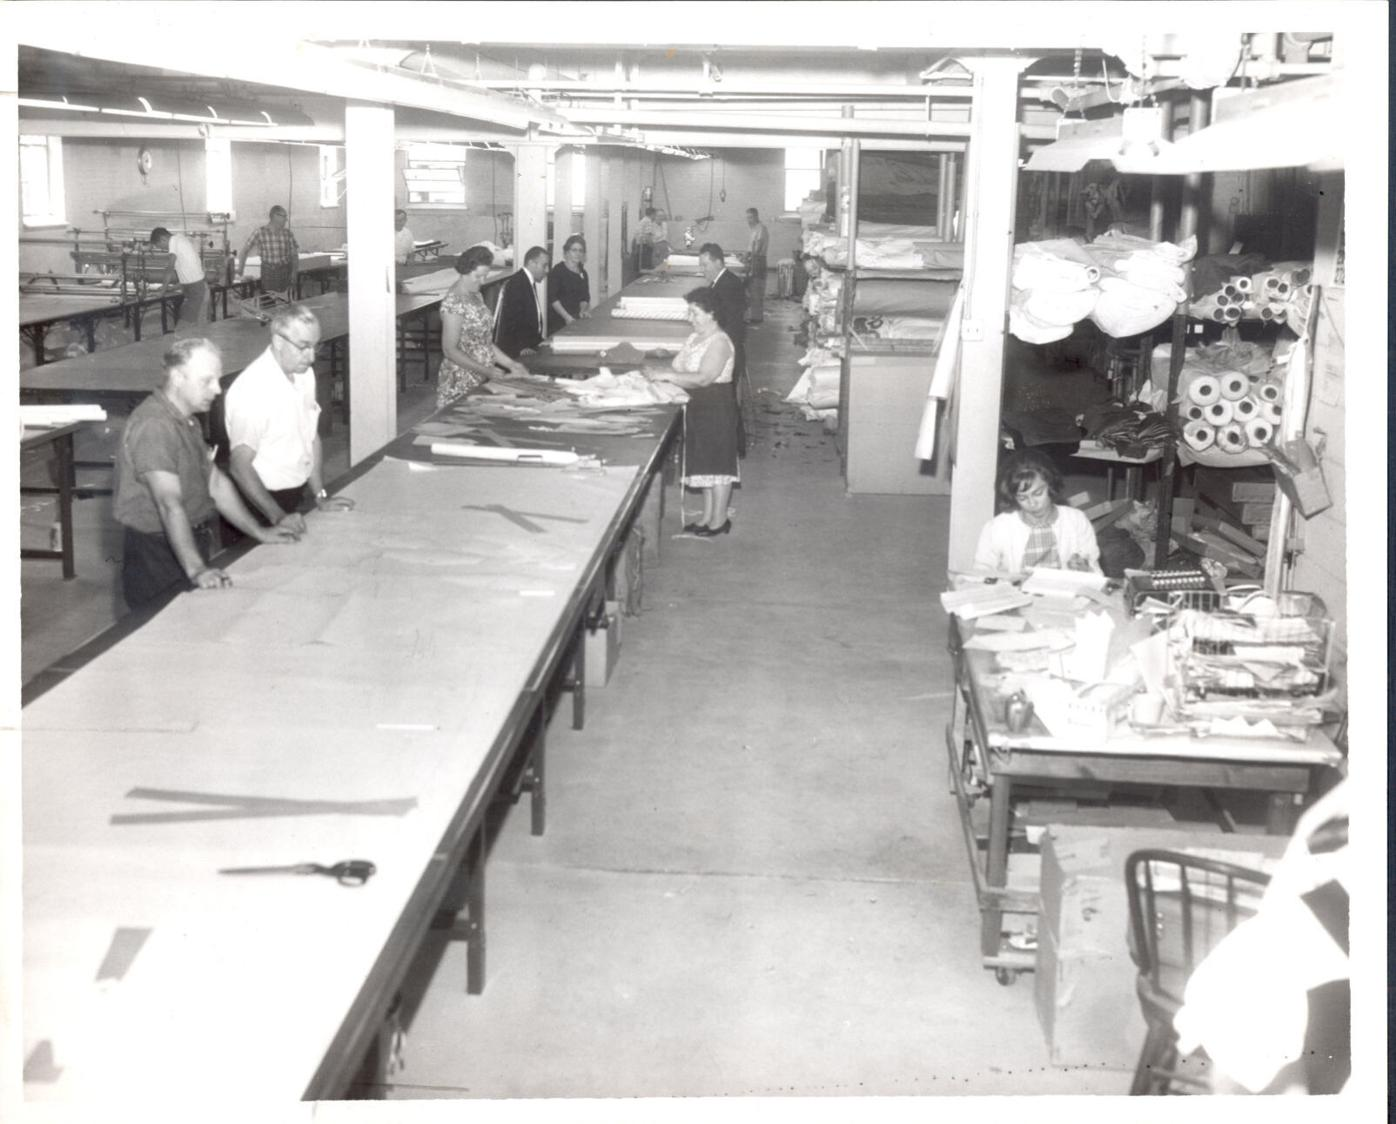 First phase of a two-part expansion program at the Archbald Sewing Co, 142 Cherry St., Archbald, has included renovation of the basement, where the cutting room shown here has been installed, along with offices and a cafeteria. TIMES FILE